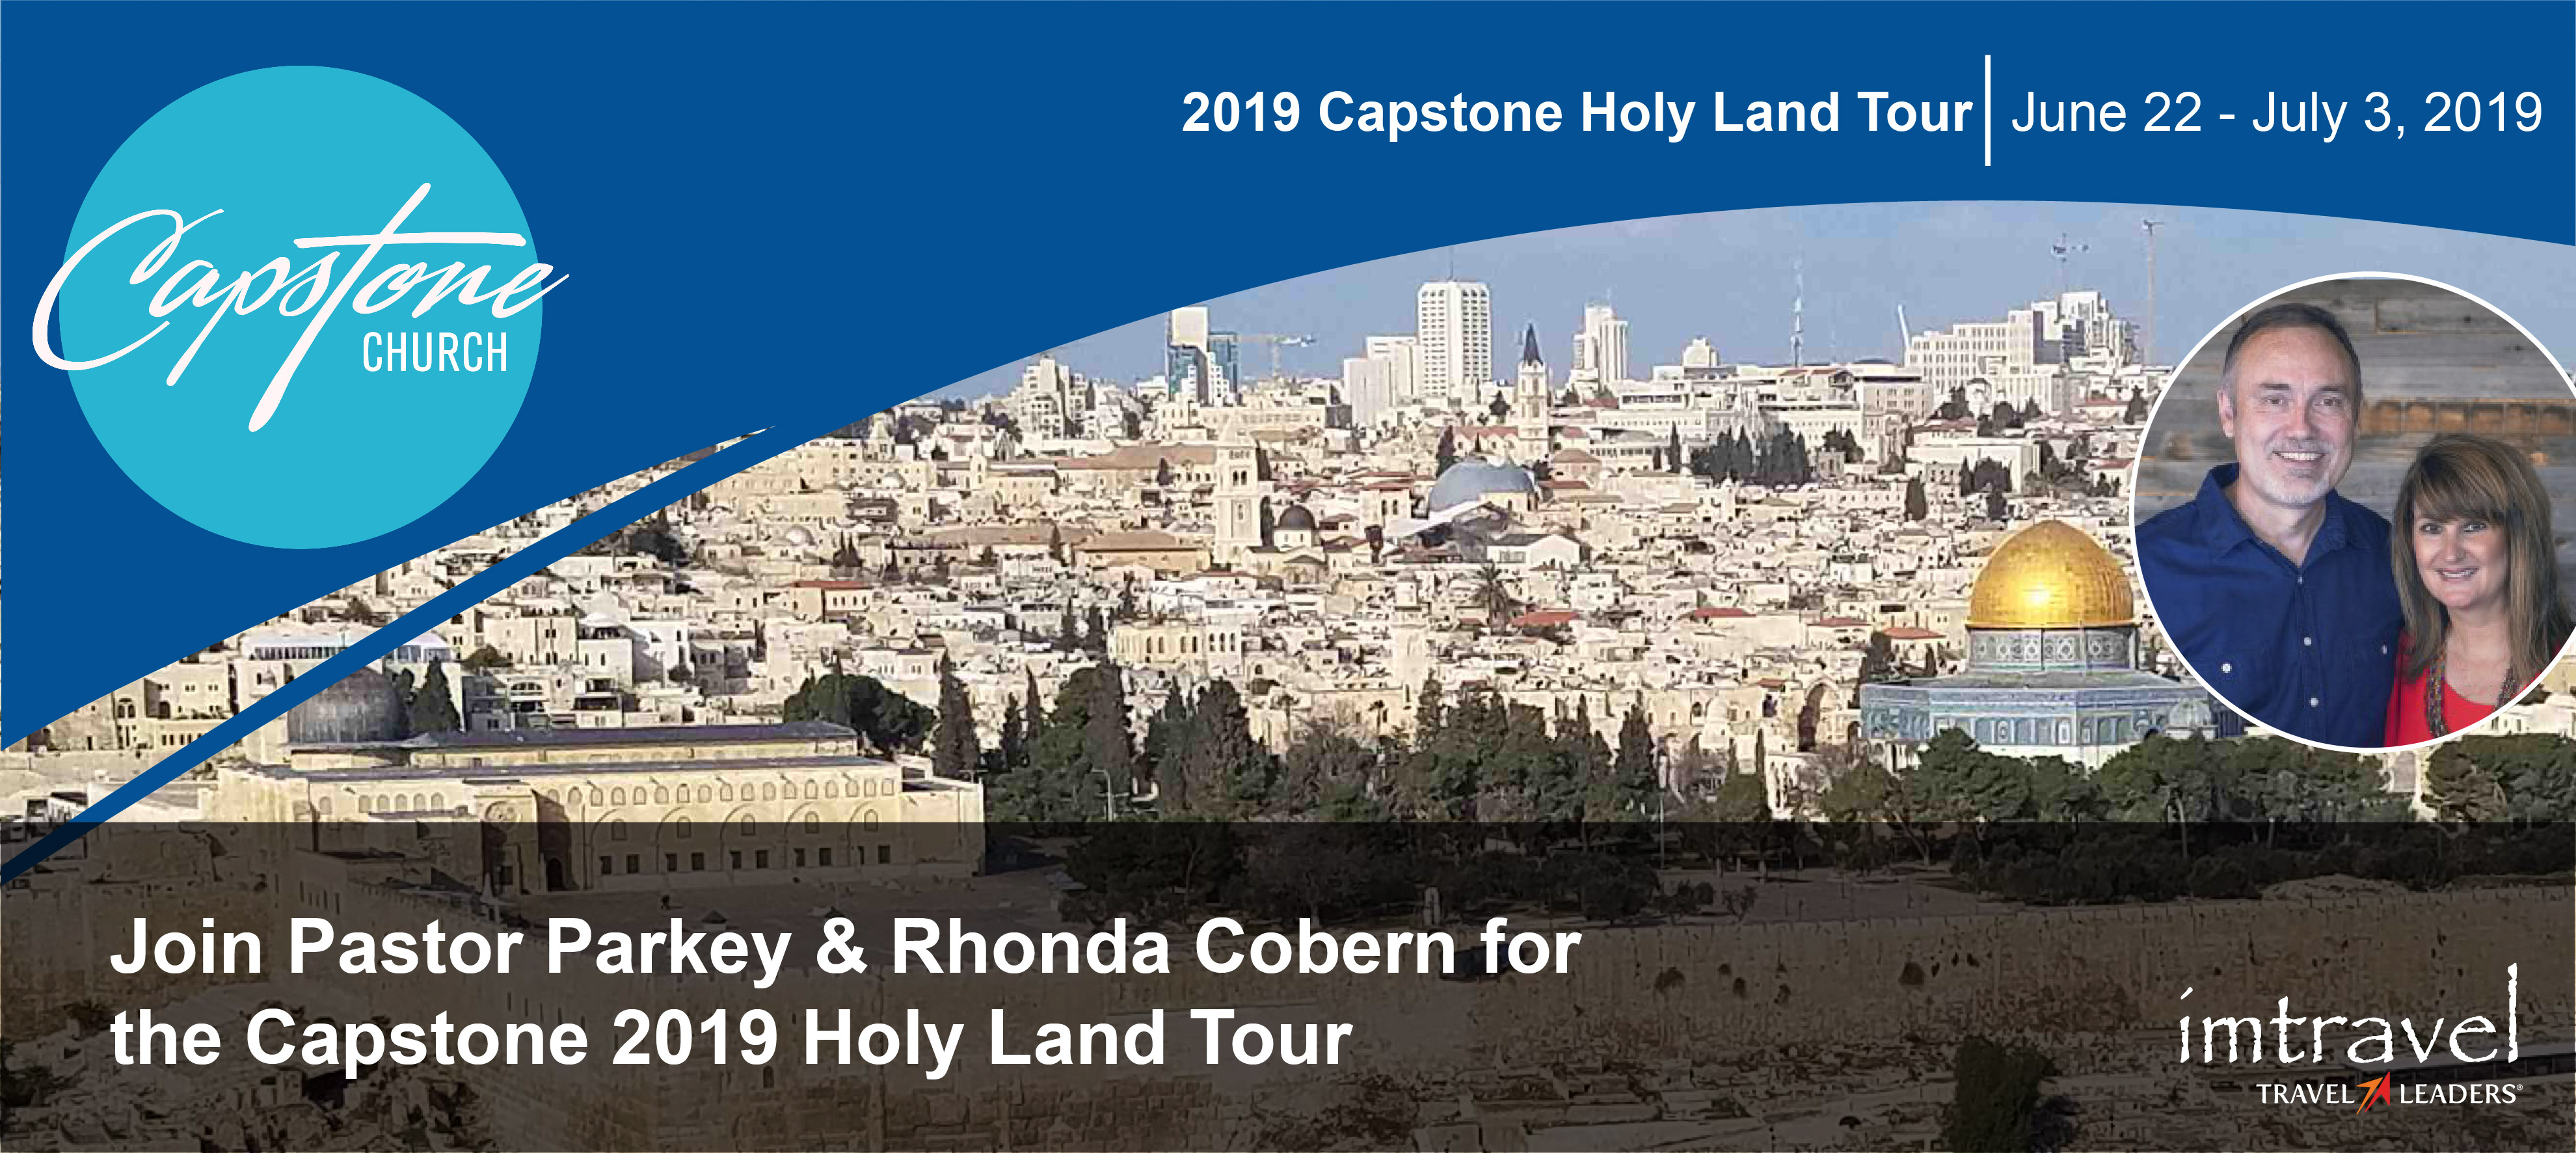 2019 Capstone Holy Land Tour